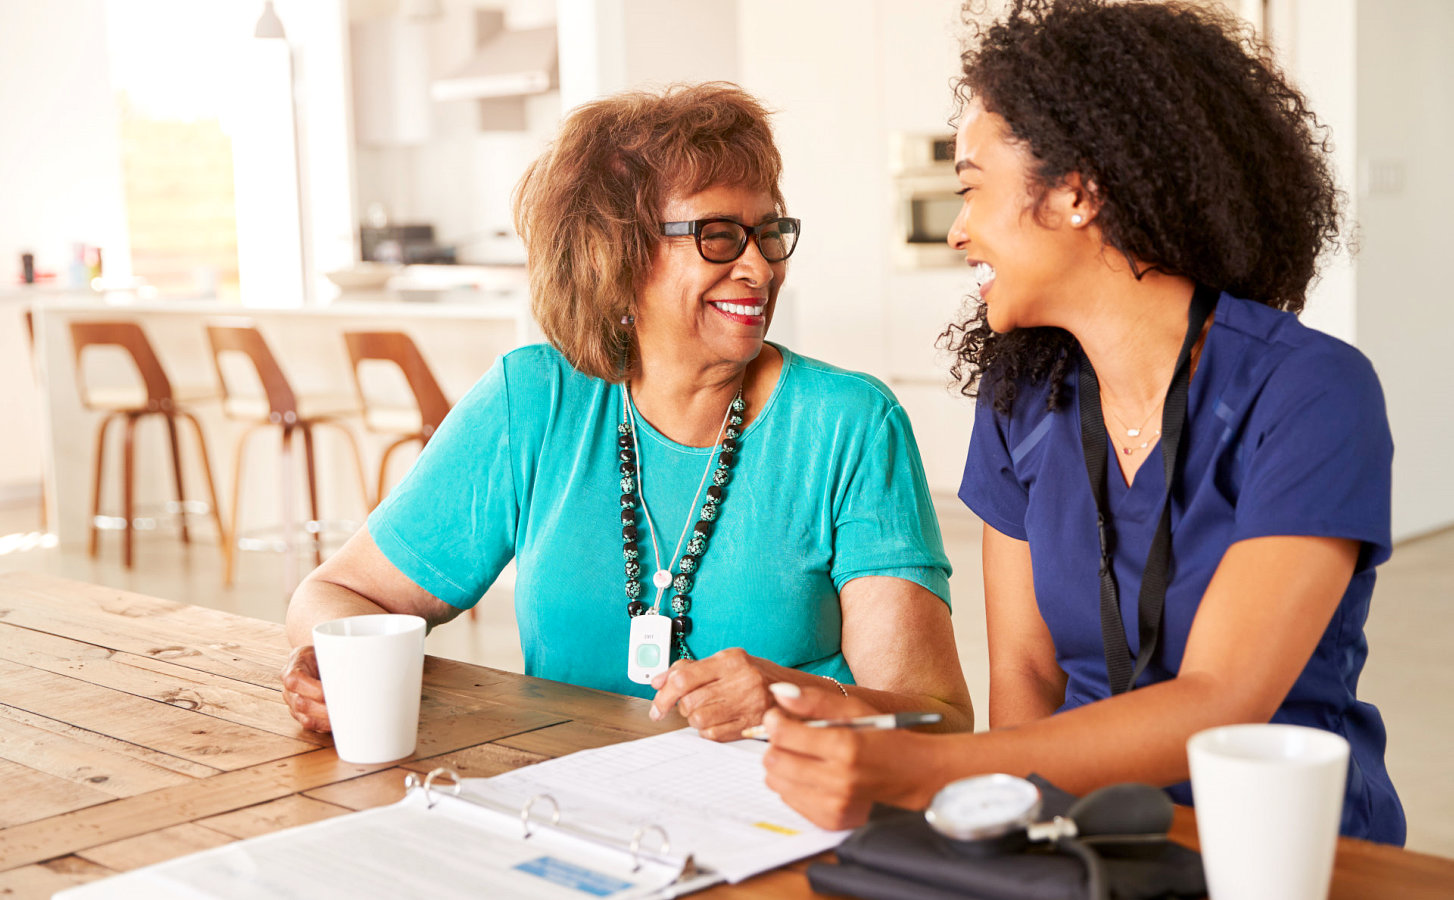 caregiver and a senior woman happily writing on a pad